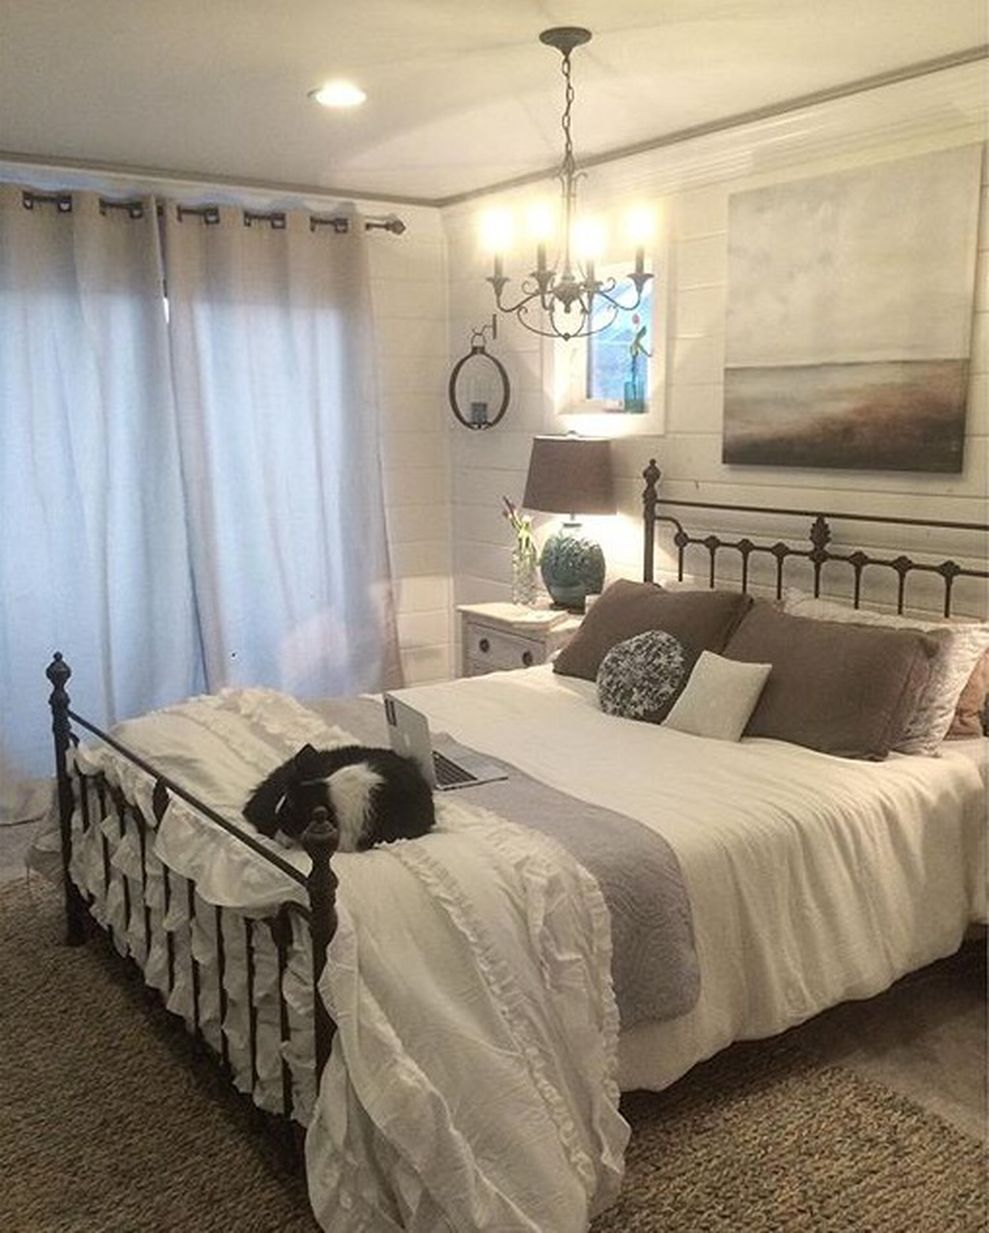 Cheap Home Decor Decorate On A Budget